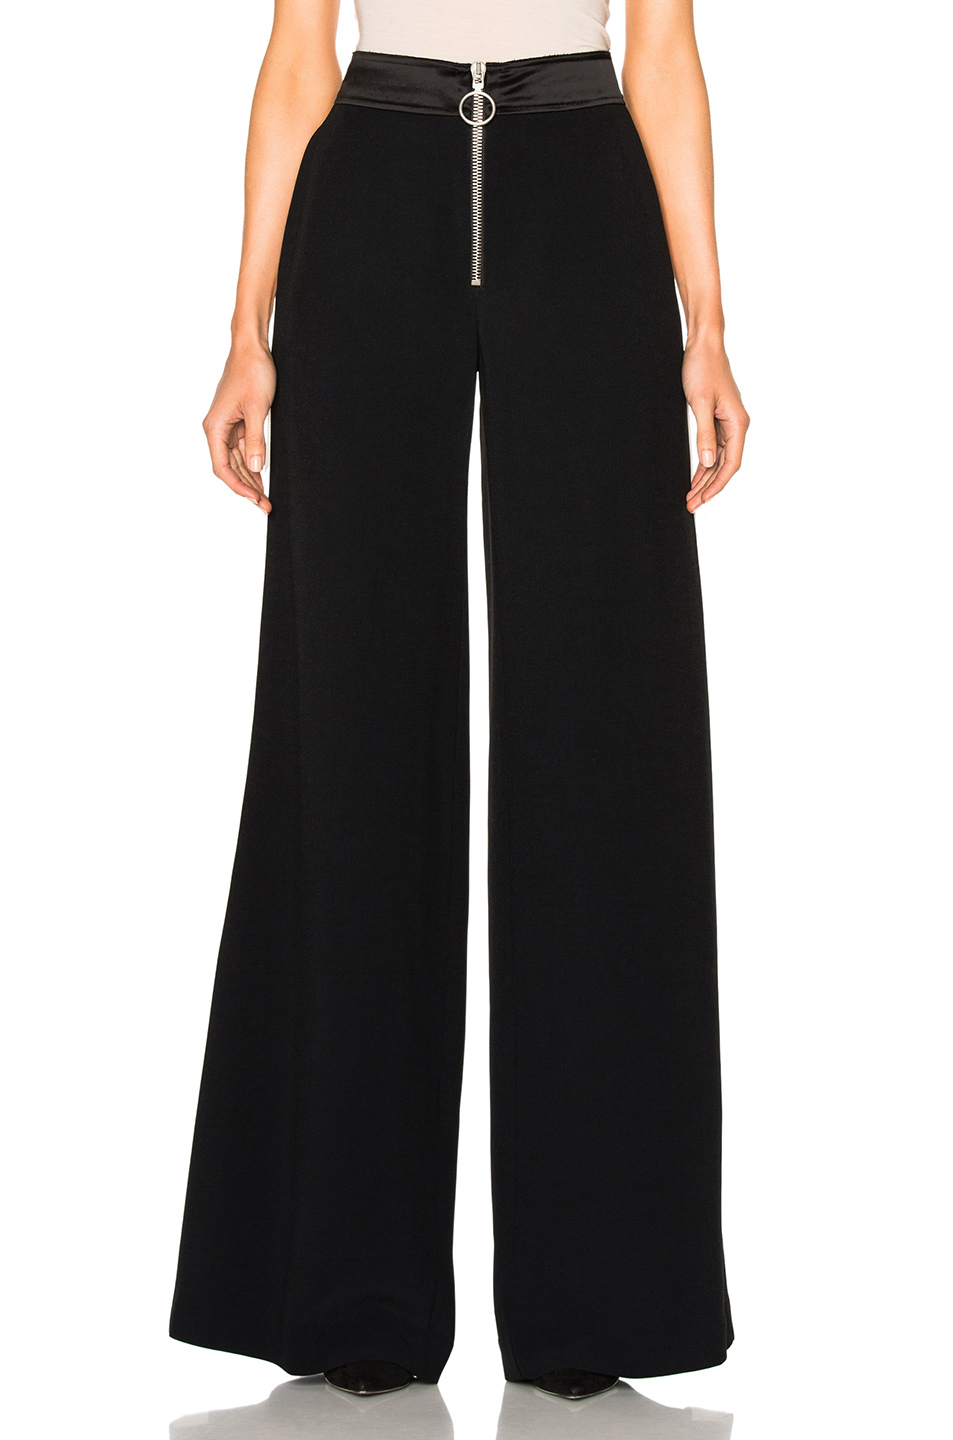 OFF-WHITE Side Band Trousers in Black